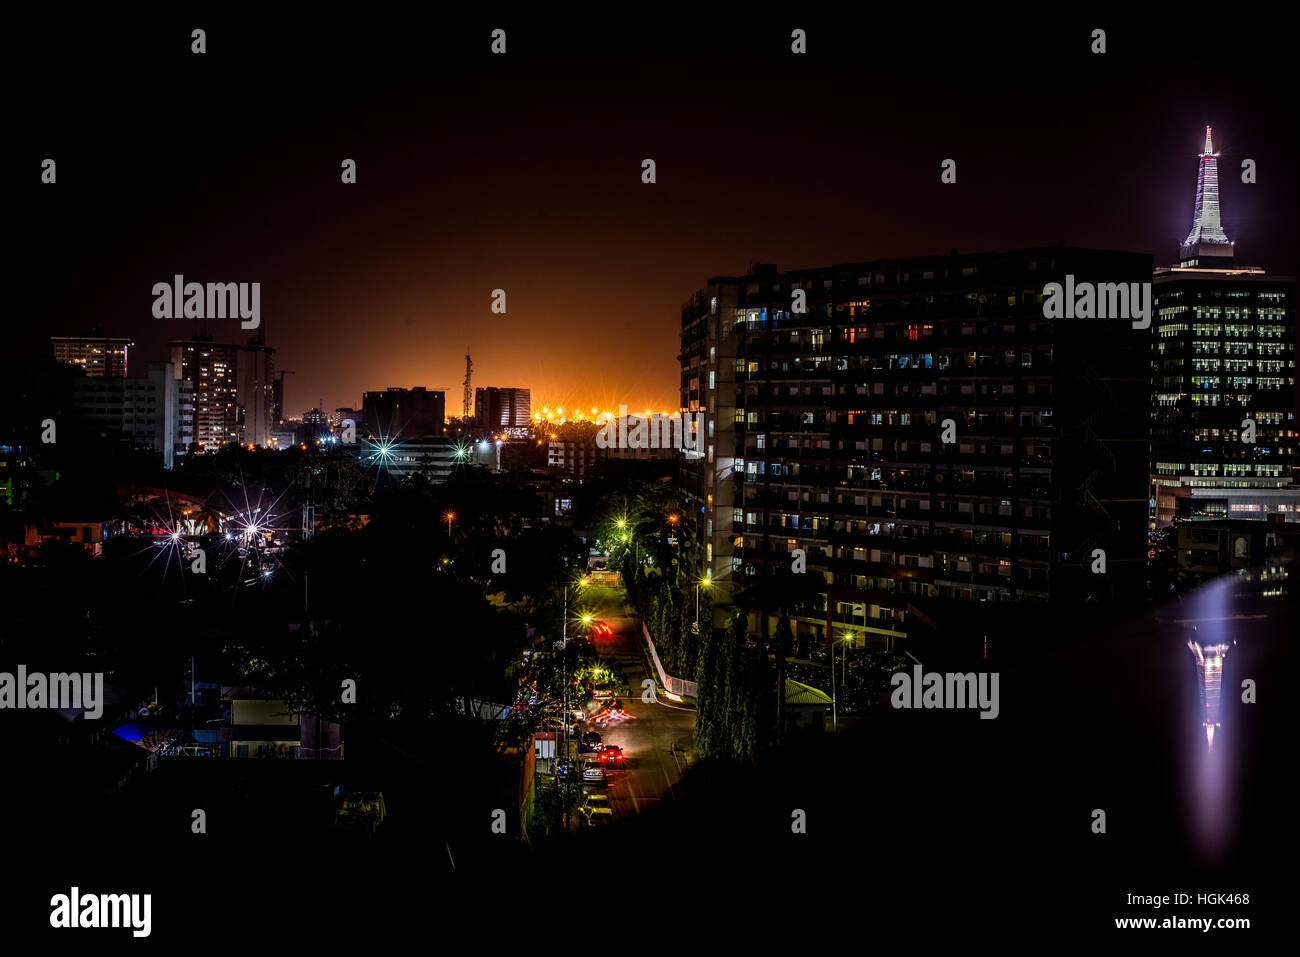 A night view of the 1004 Housing Estate, Lagos - Stock Image